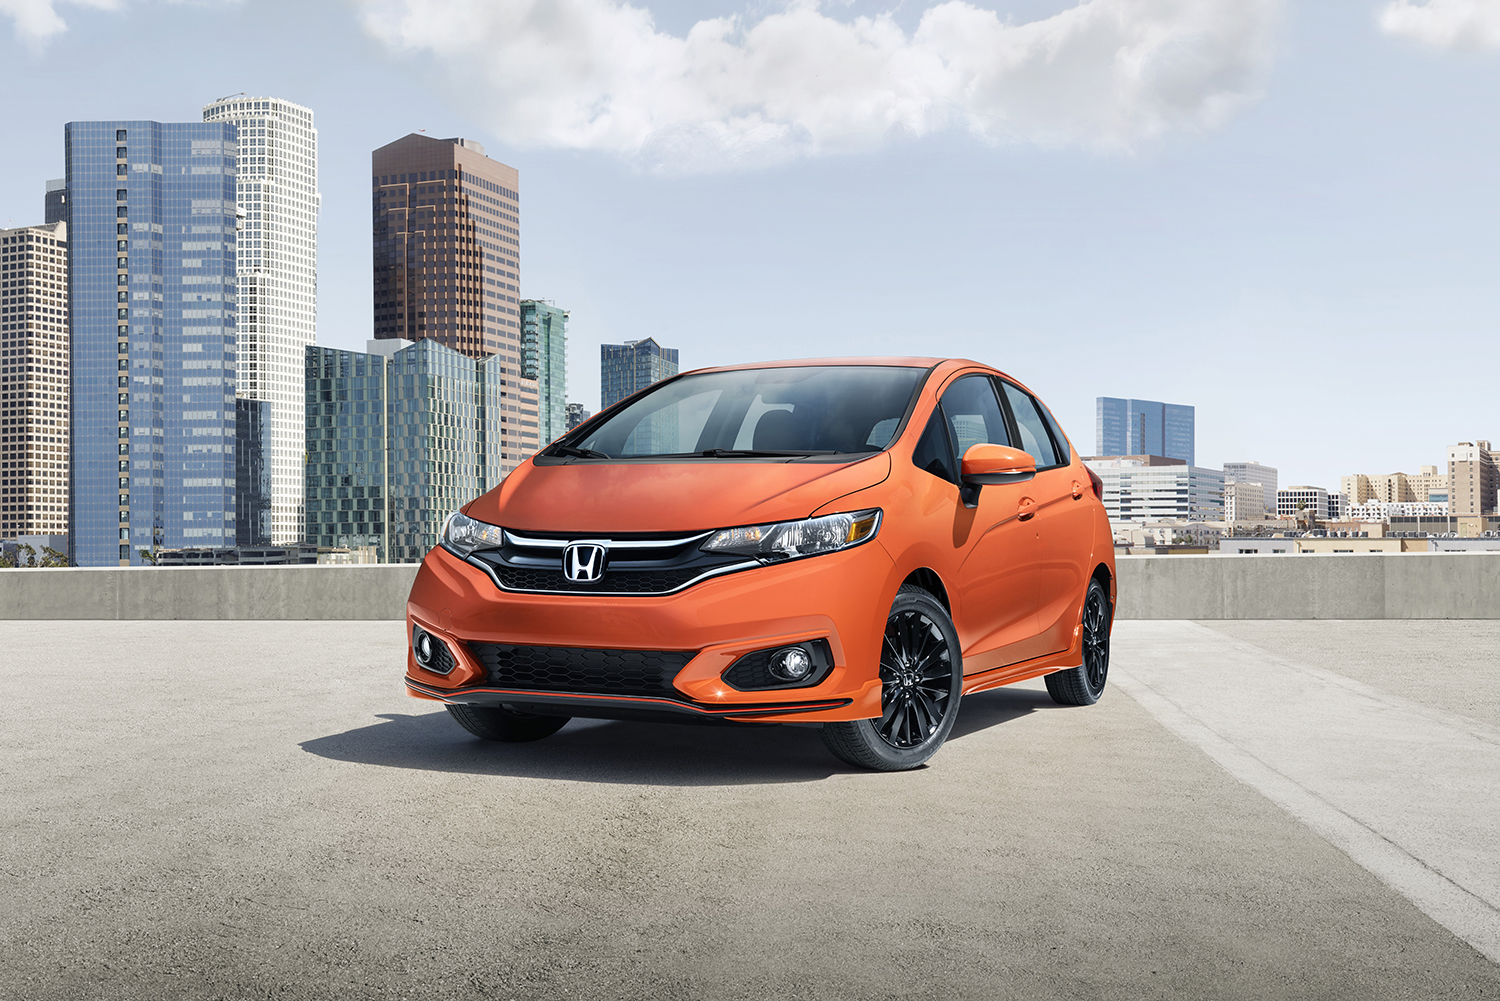 Honda Fit Gets a New Face, Added Safety Gear